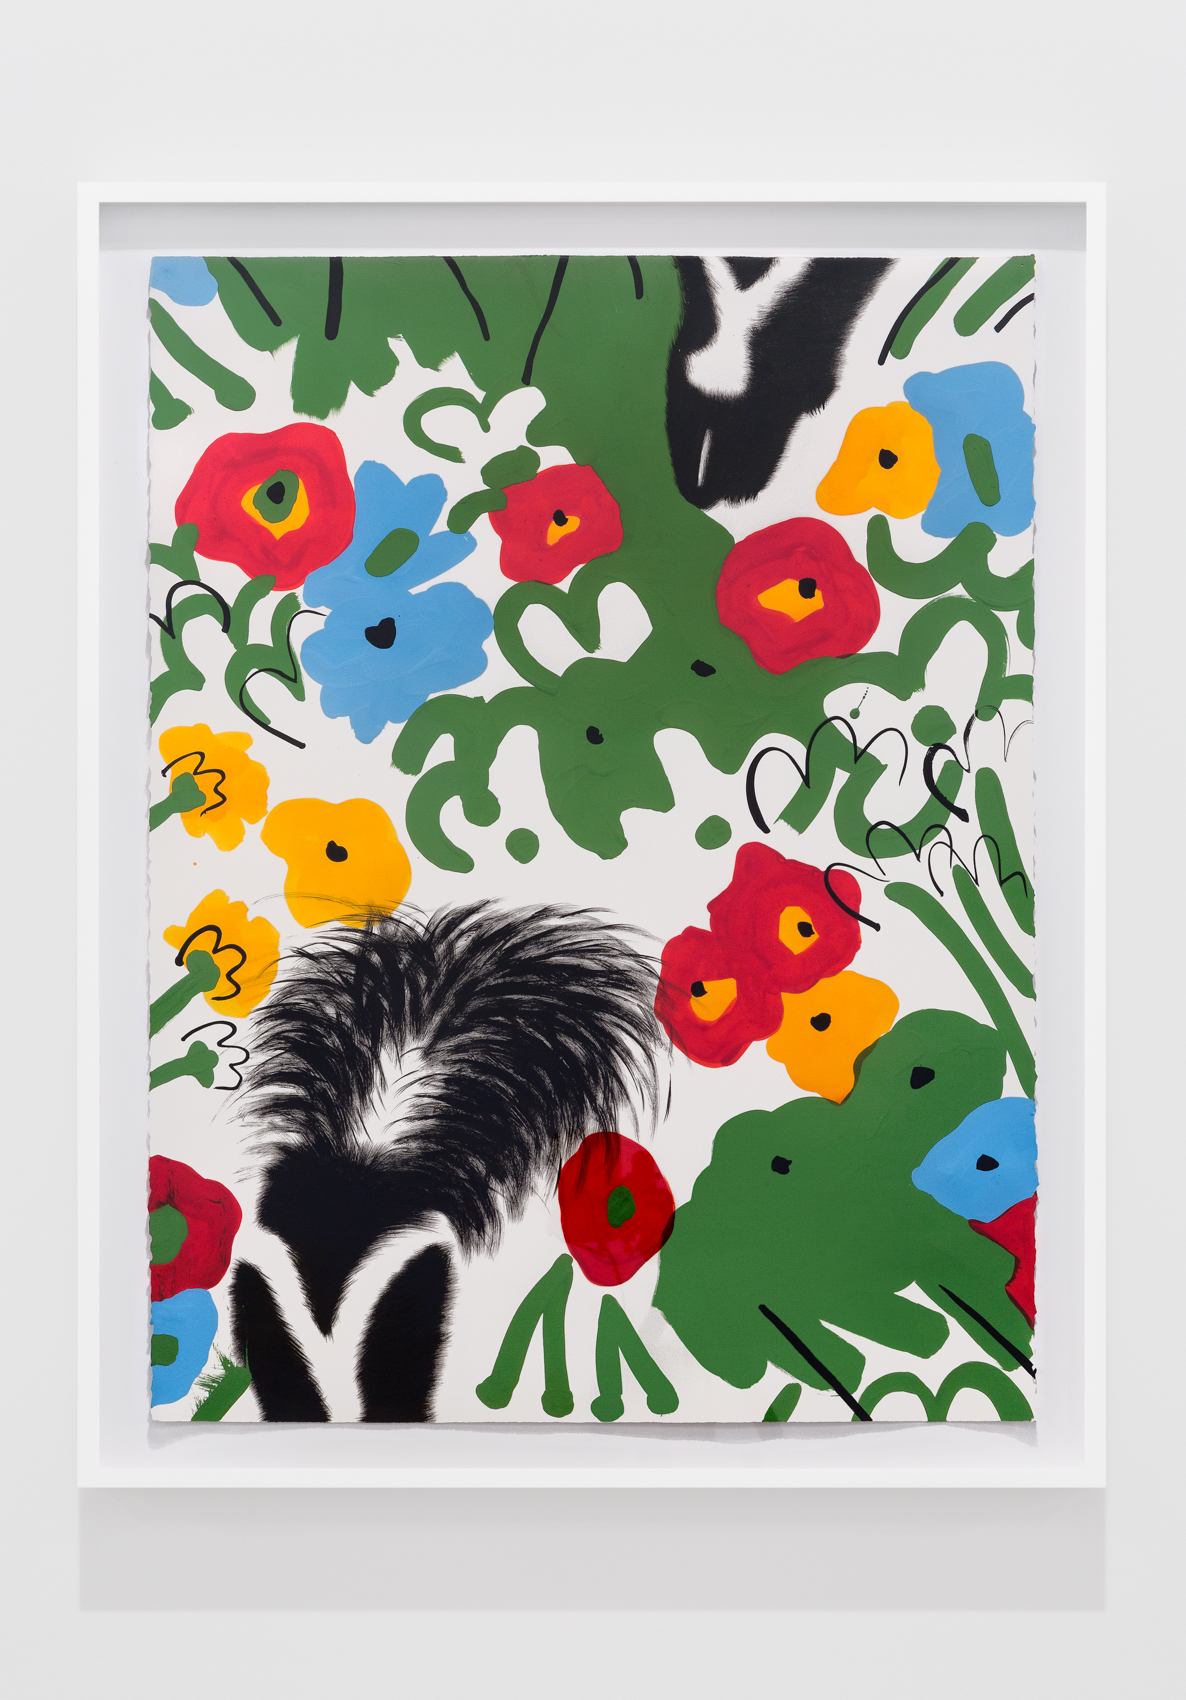 Skunks and Flowers #14